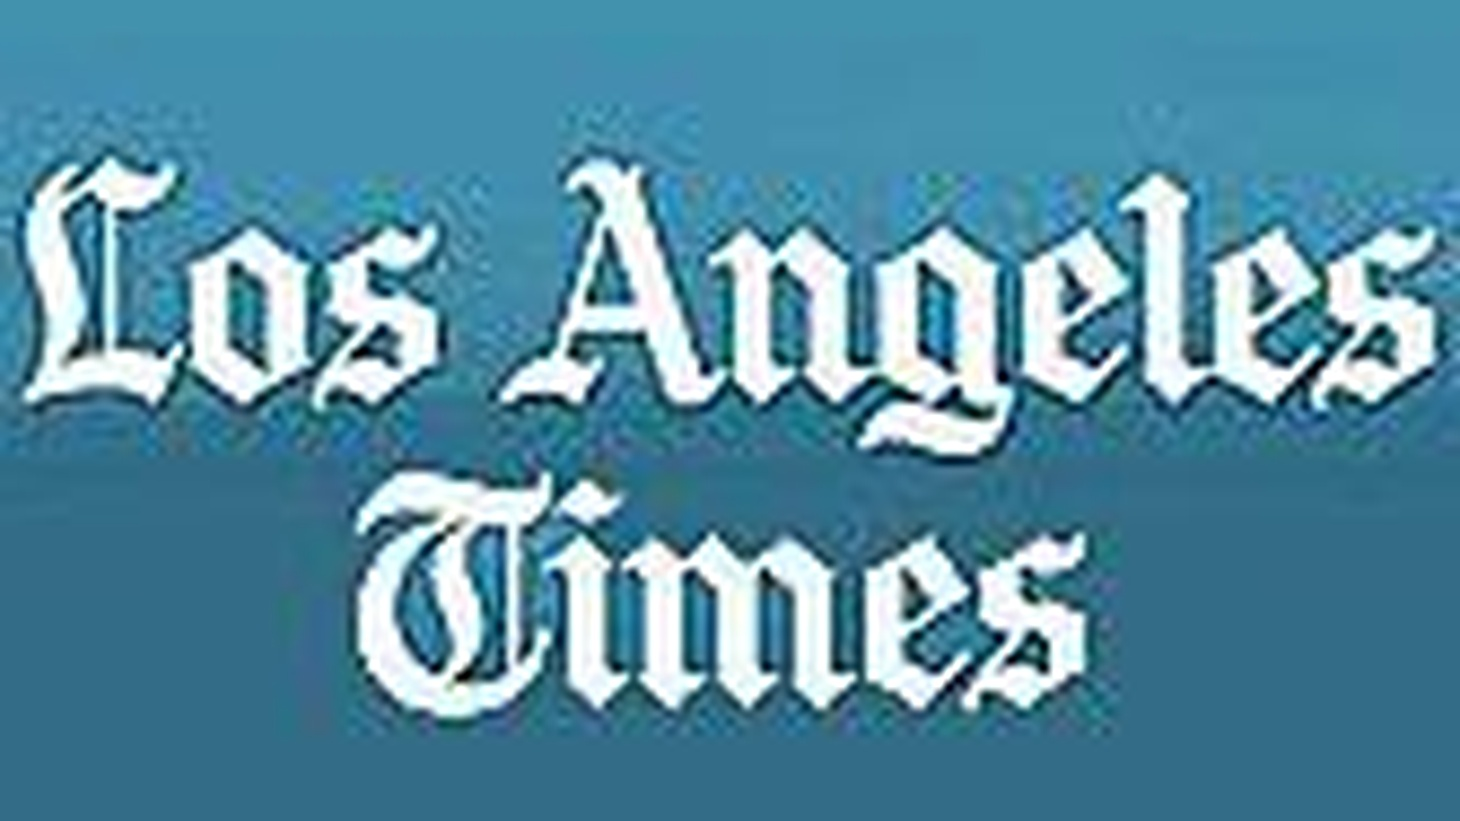 There's turmoil at the Los Angeles Times. Under its new ownership, it's